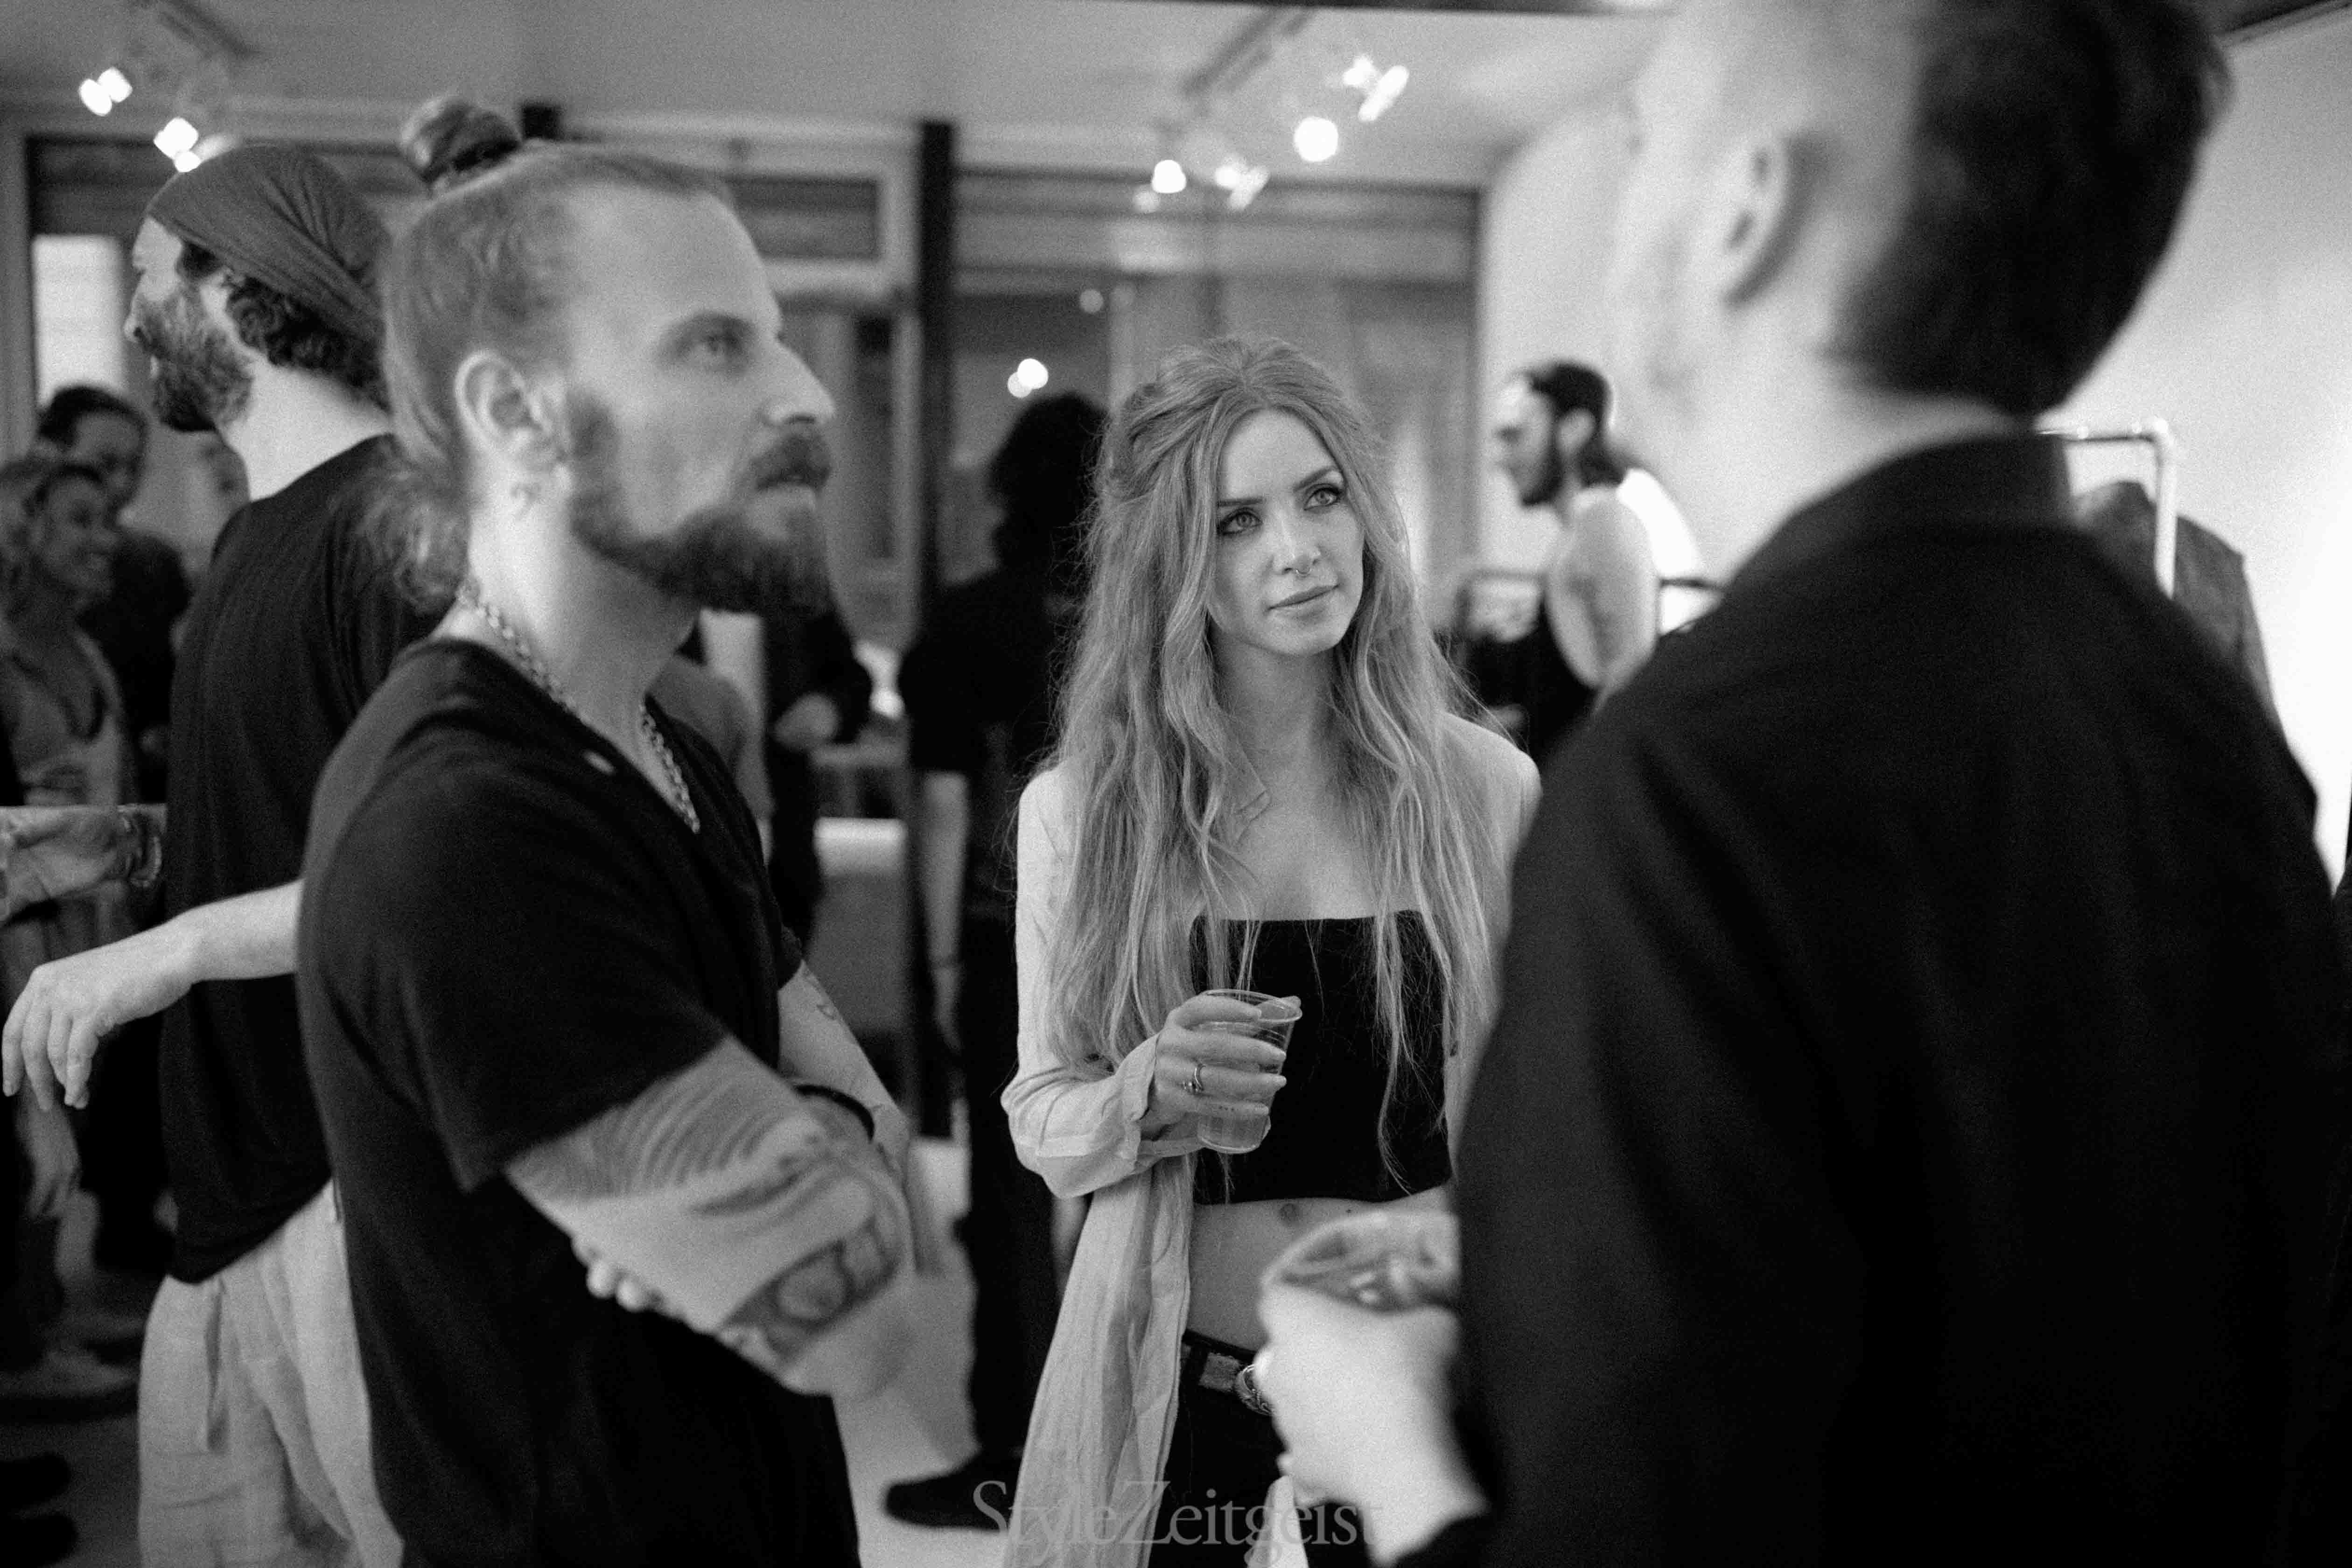 Lumen et Umbra X Jonny White – Capsule Collection Launch Party - fashion - StyleZeitgeist, Matthew Reeves, Lumen Et Umbra, Jonny White, Fashion, Art Department, 2017